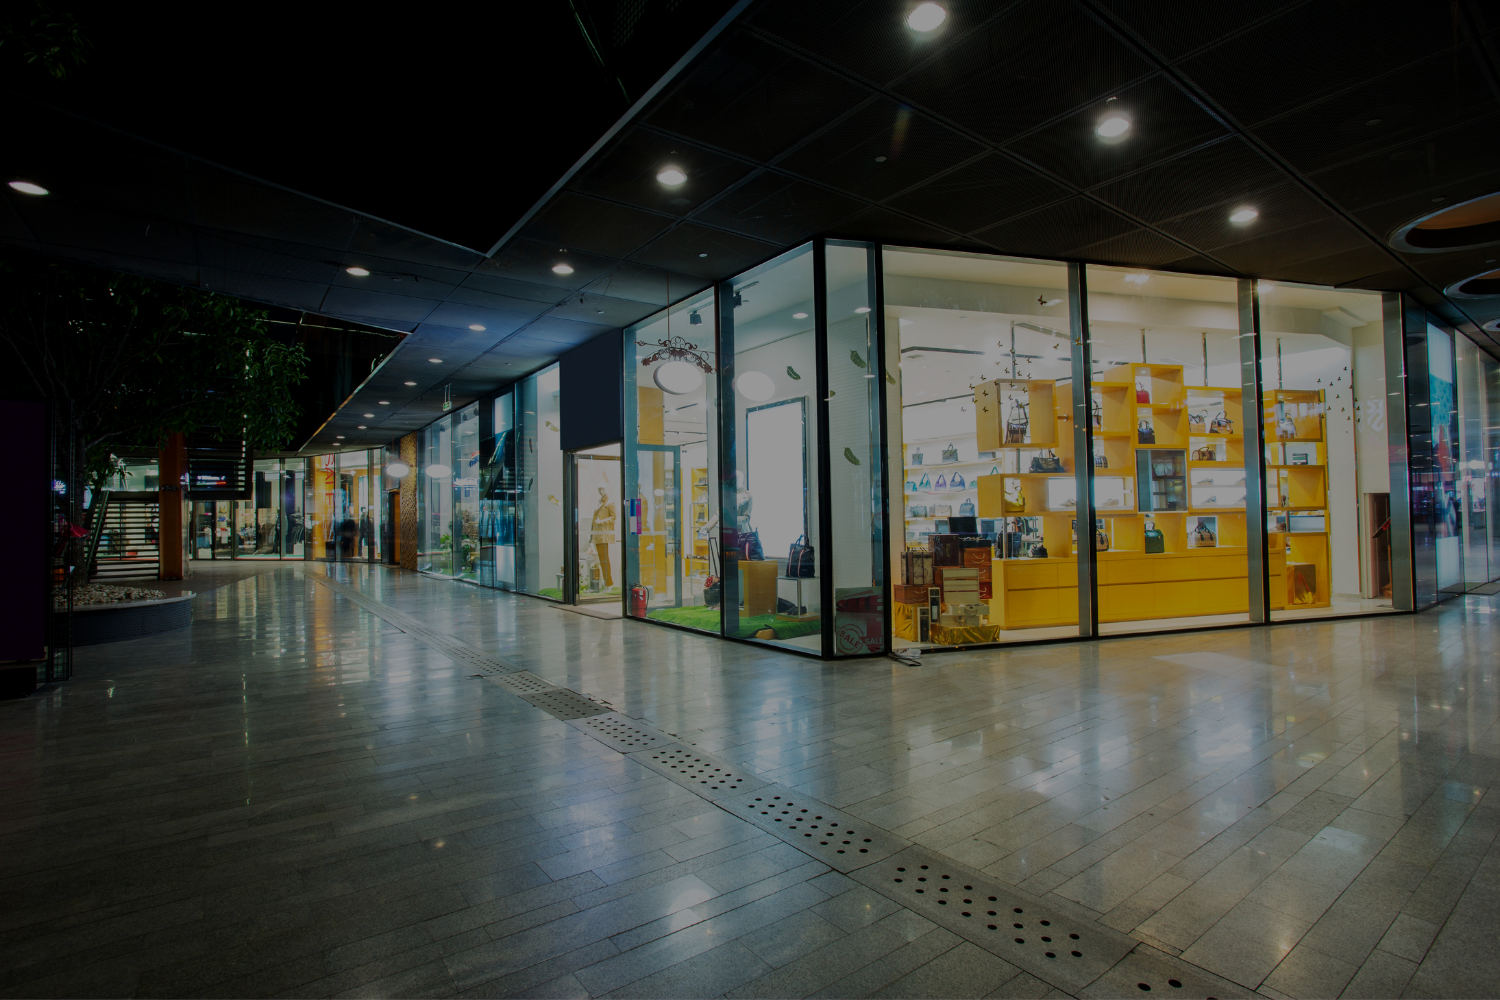 The Benefits of Updating Your Storefront Space